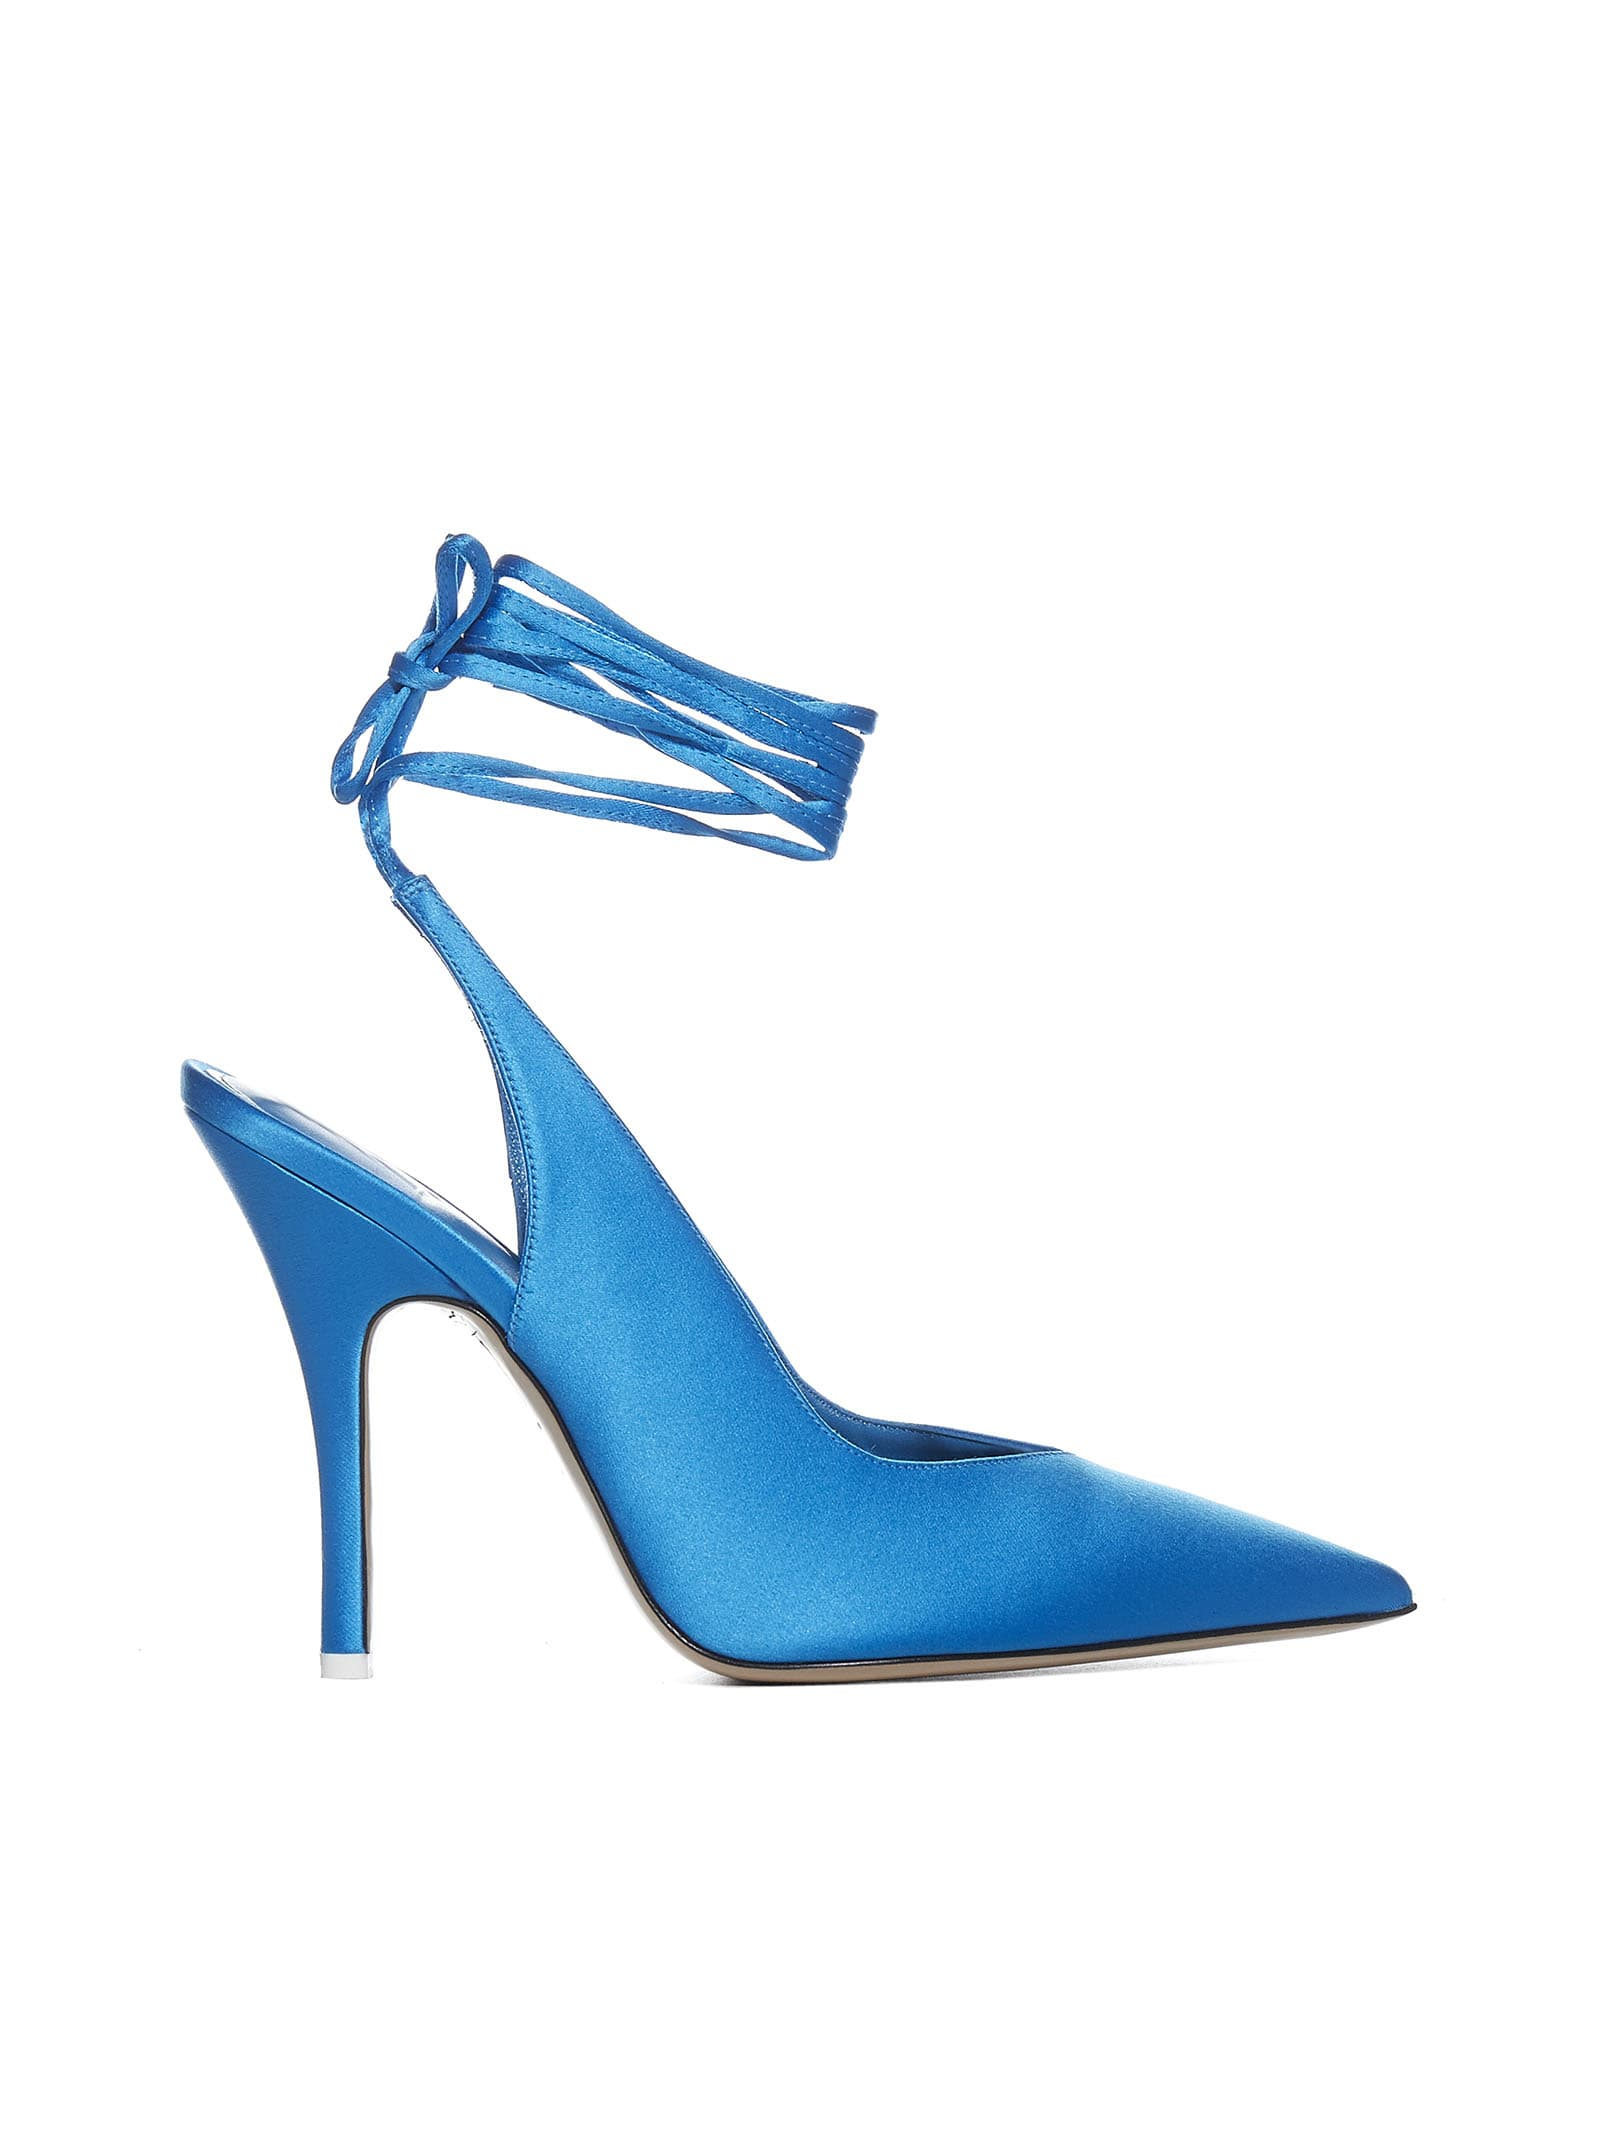 ATTICO HIGH-HEELED SHOE